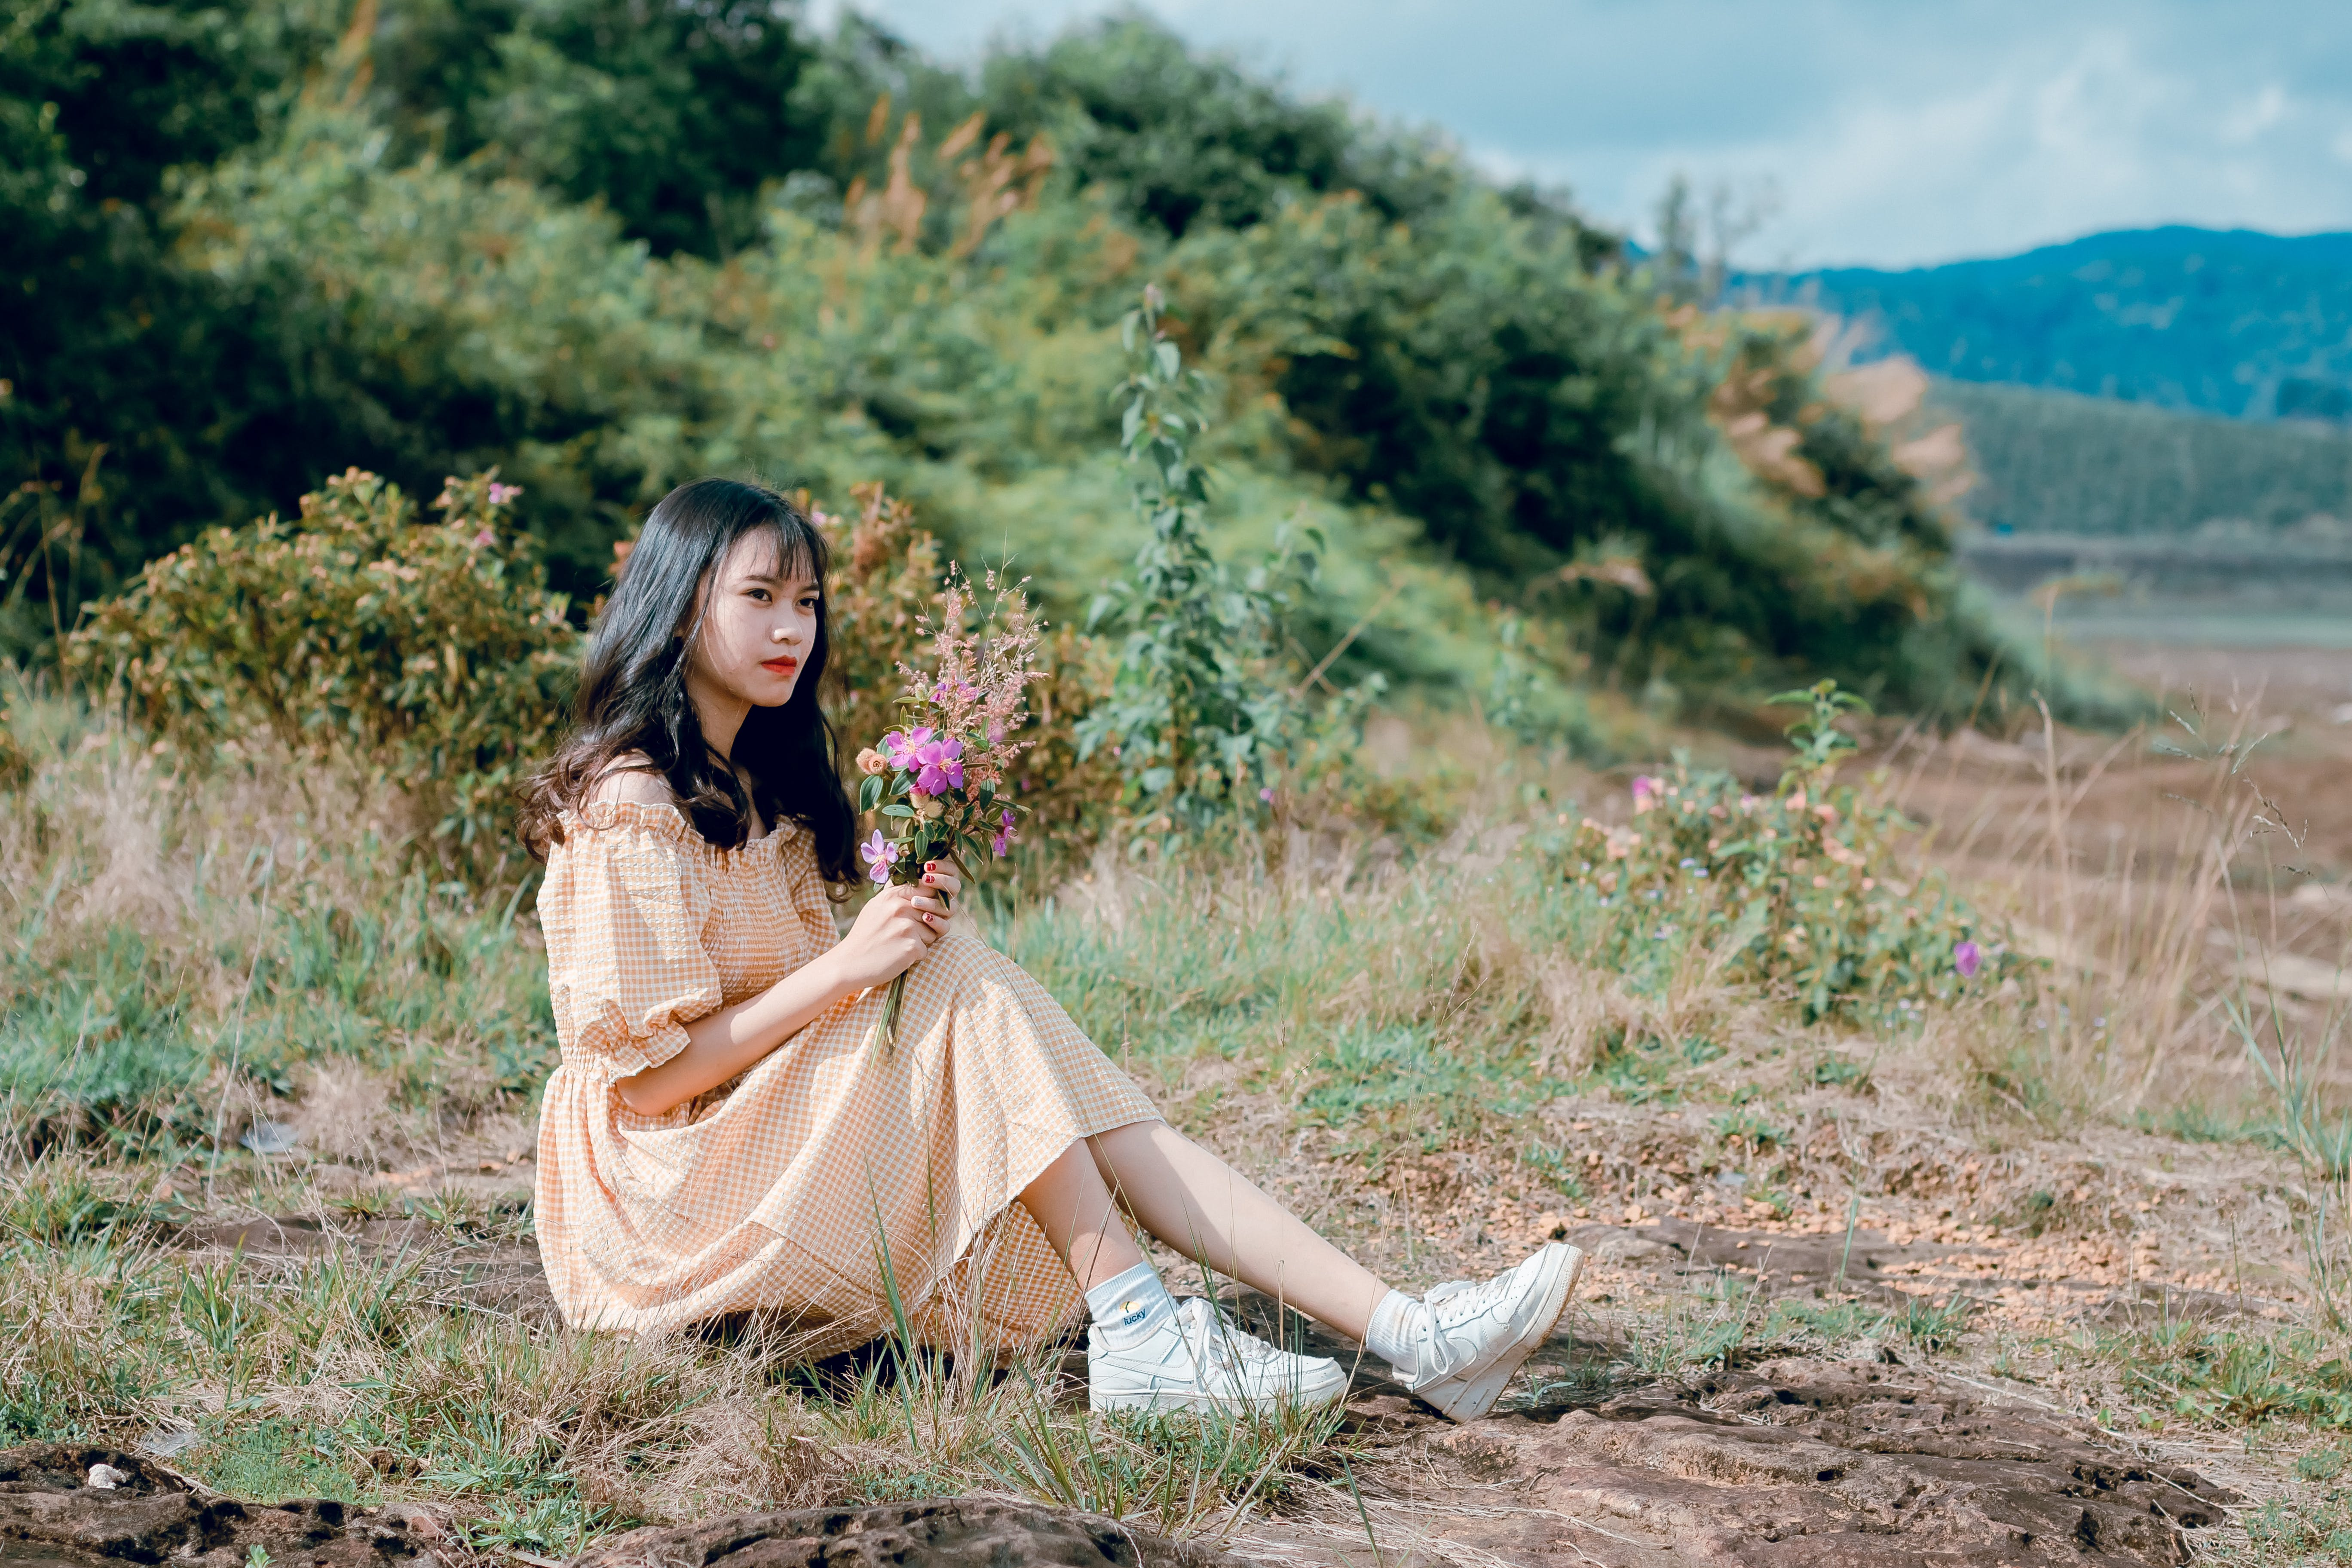 Woman With Beige Dress and White Shoes Sitting on Green Grass